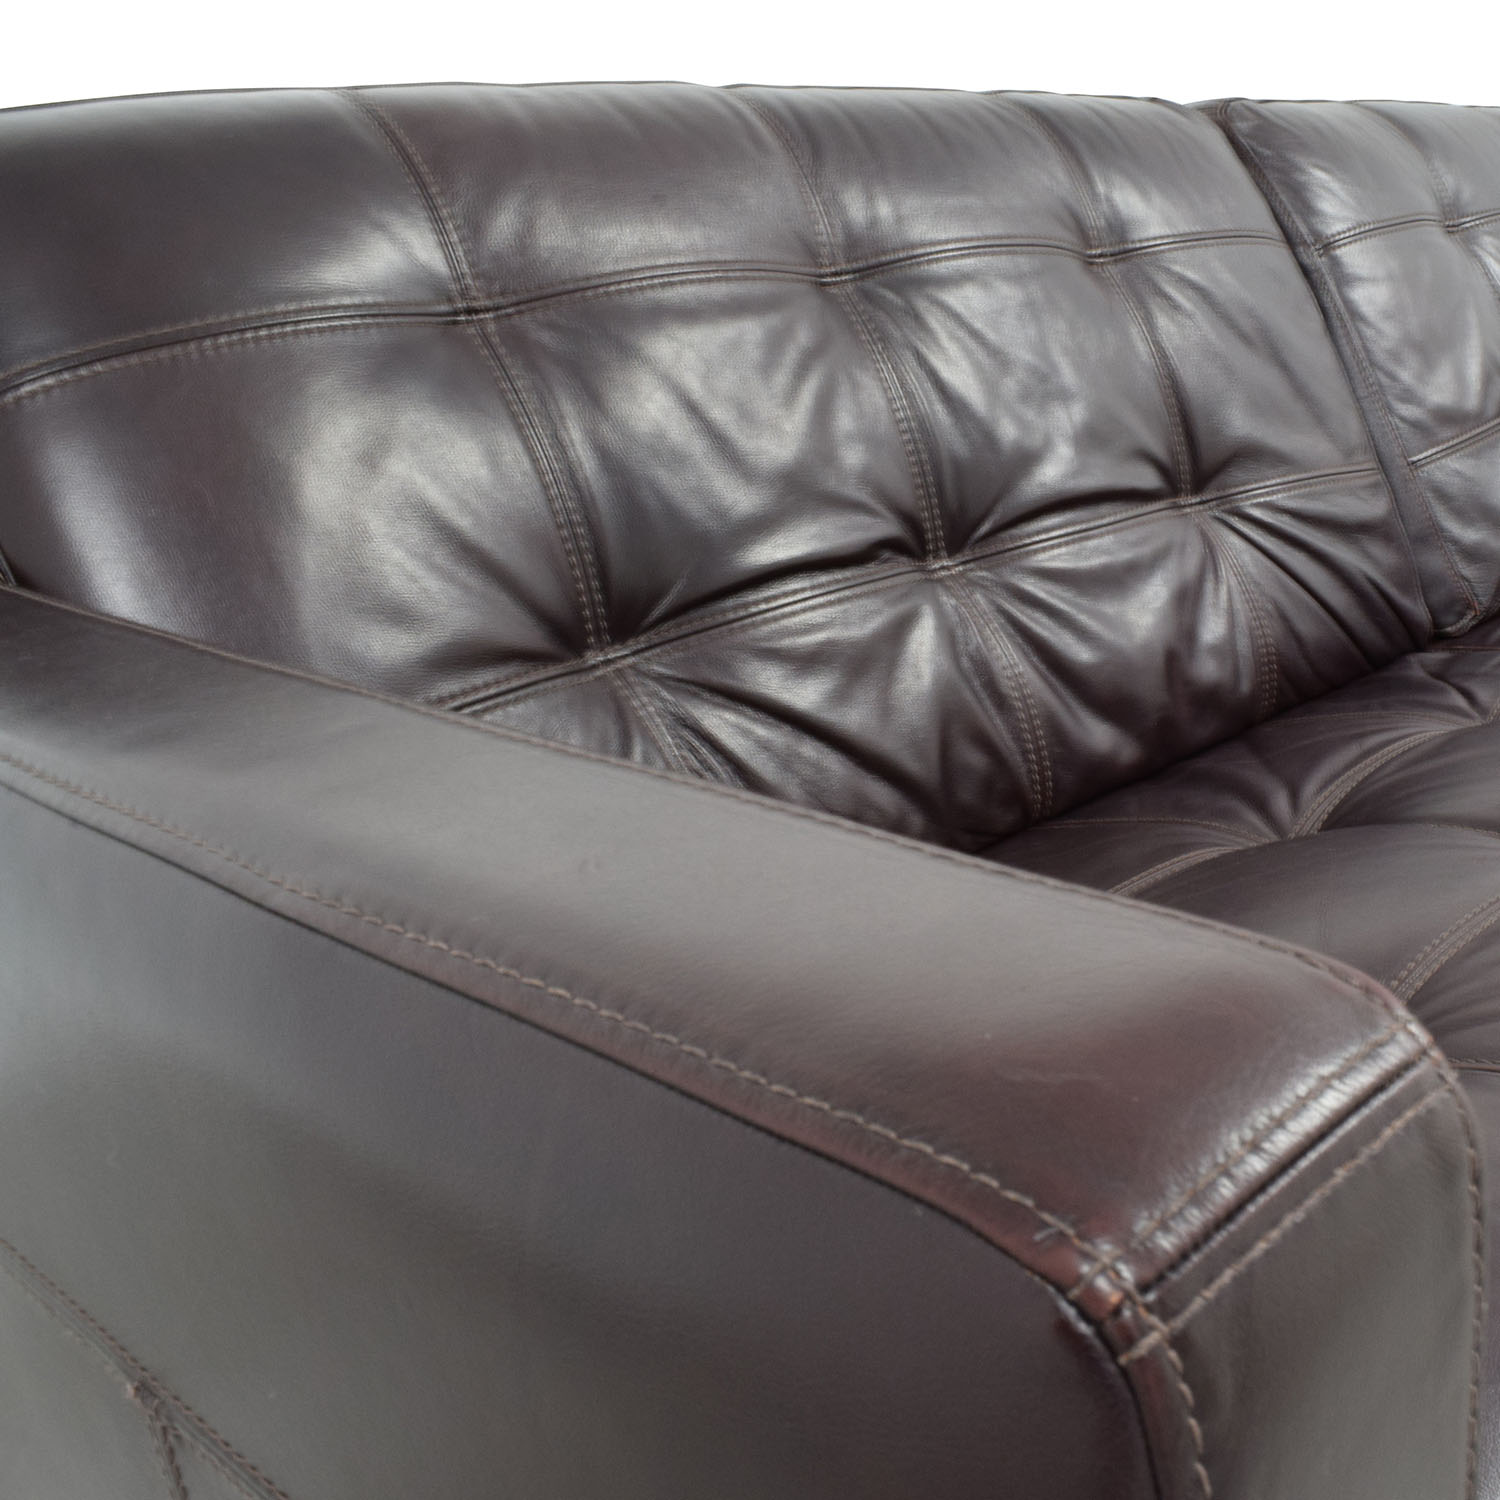 Prime 59 Off Macys Macys Milan Leather Sofa Sofas Onthecornerstone Fun Painted Chair Ideas Images Onthecornerstoneorg